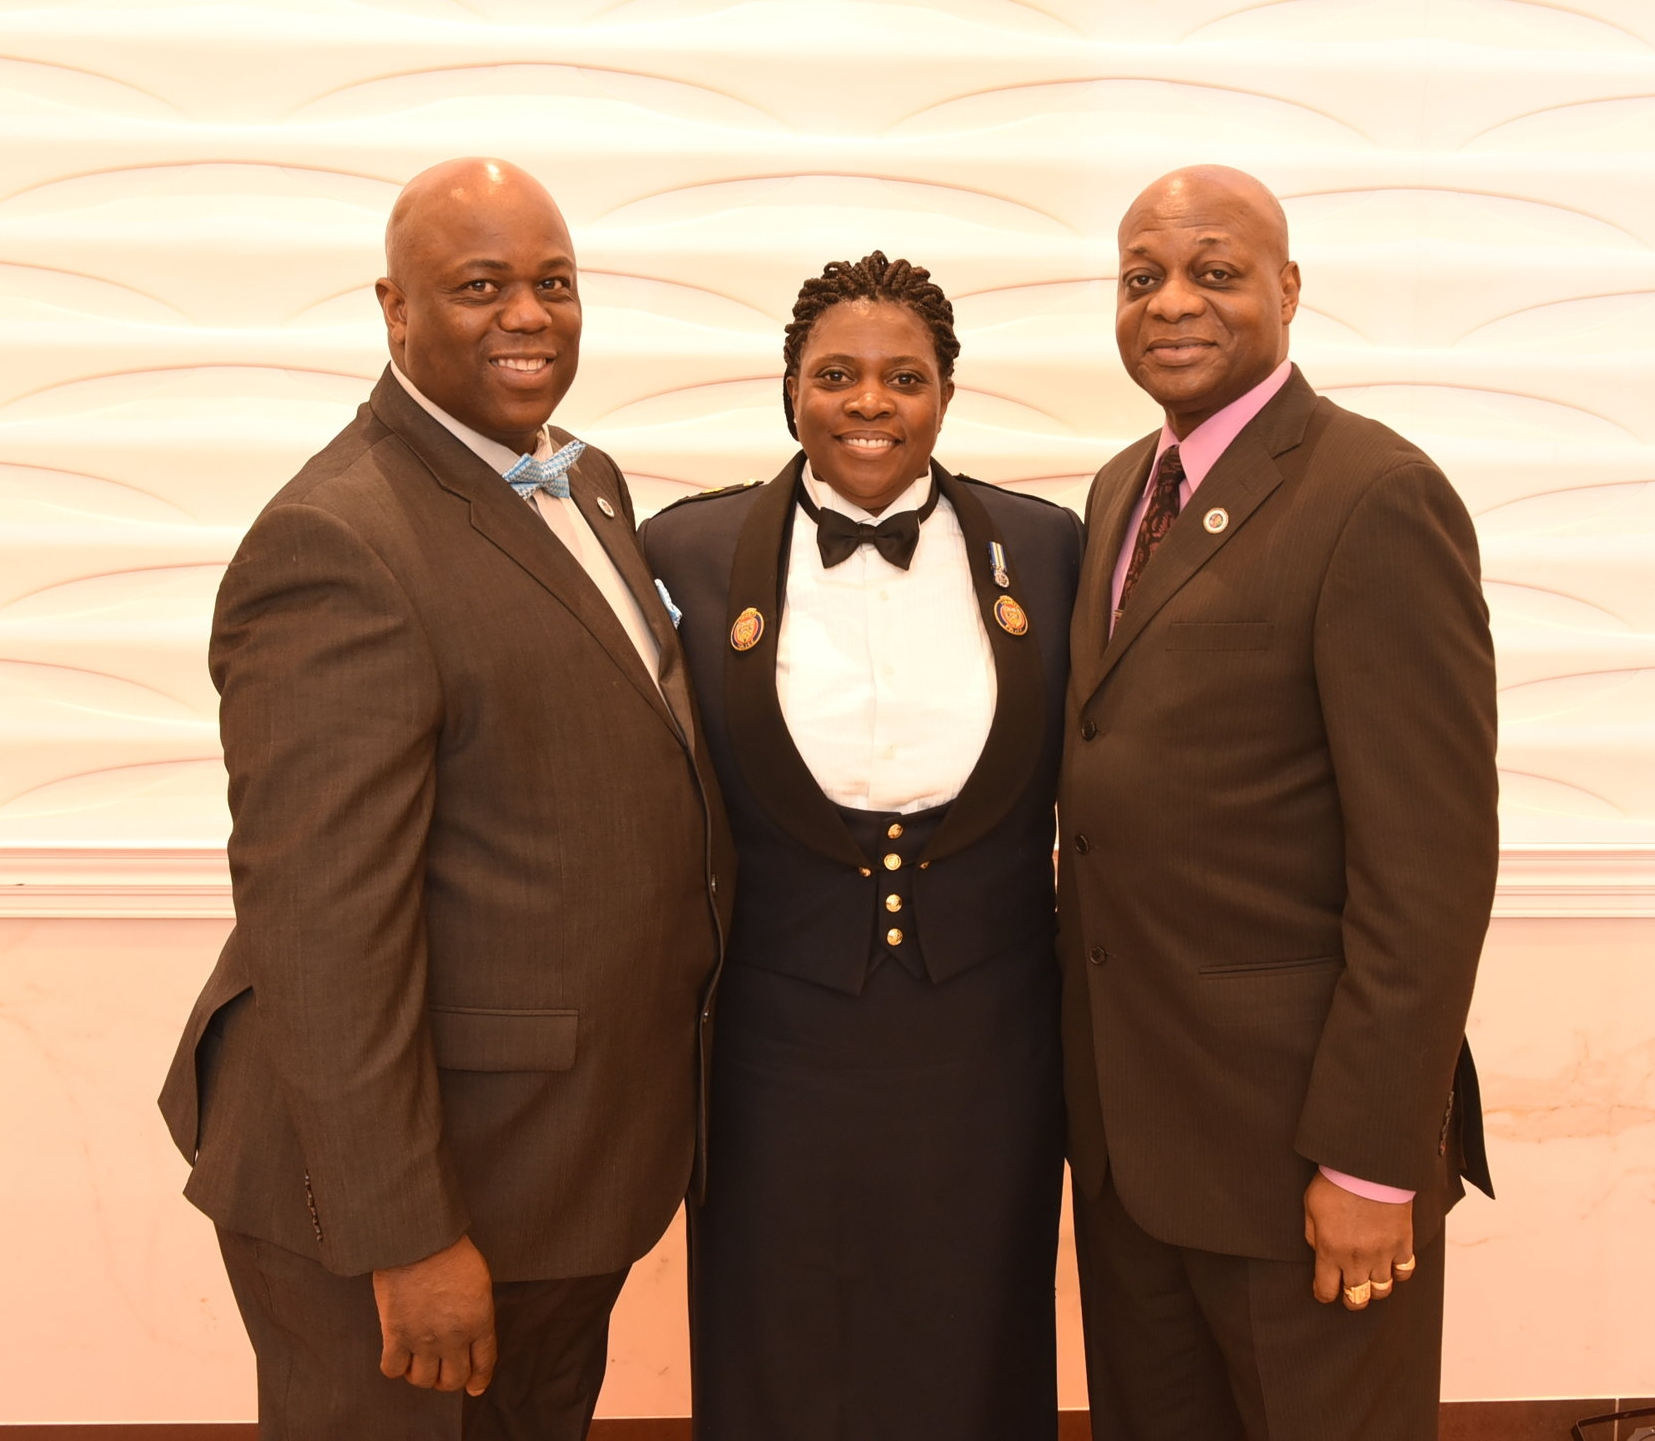 Association of Black Law Enforcers founding president David Mitchell (l) and current president Kenton Chance presented the Lifetime Achievement Award to Inspector Sonia Thomas